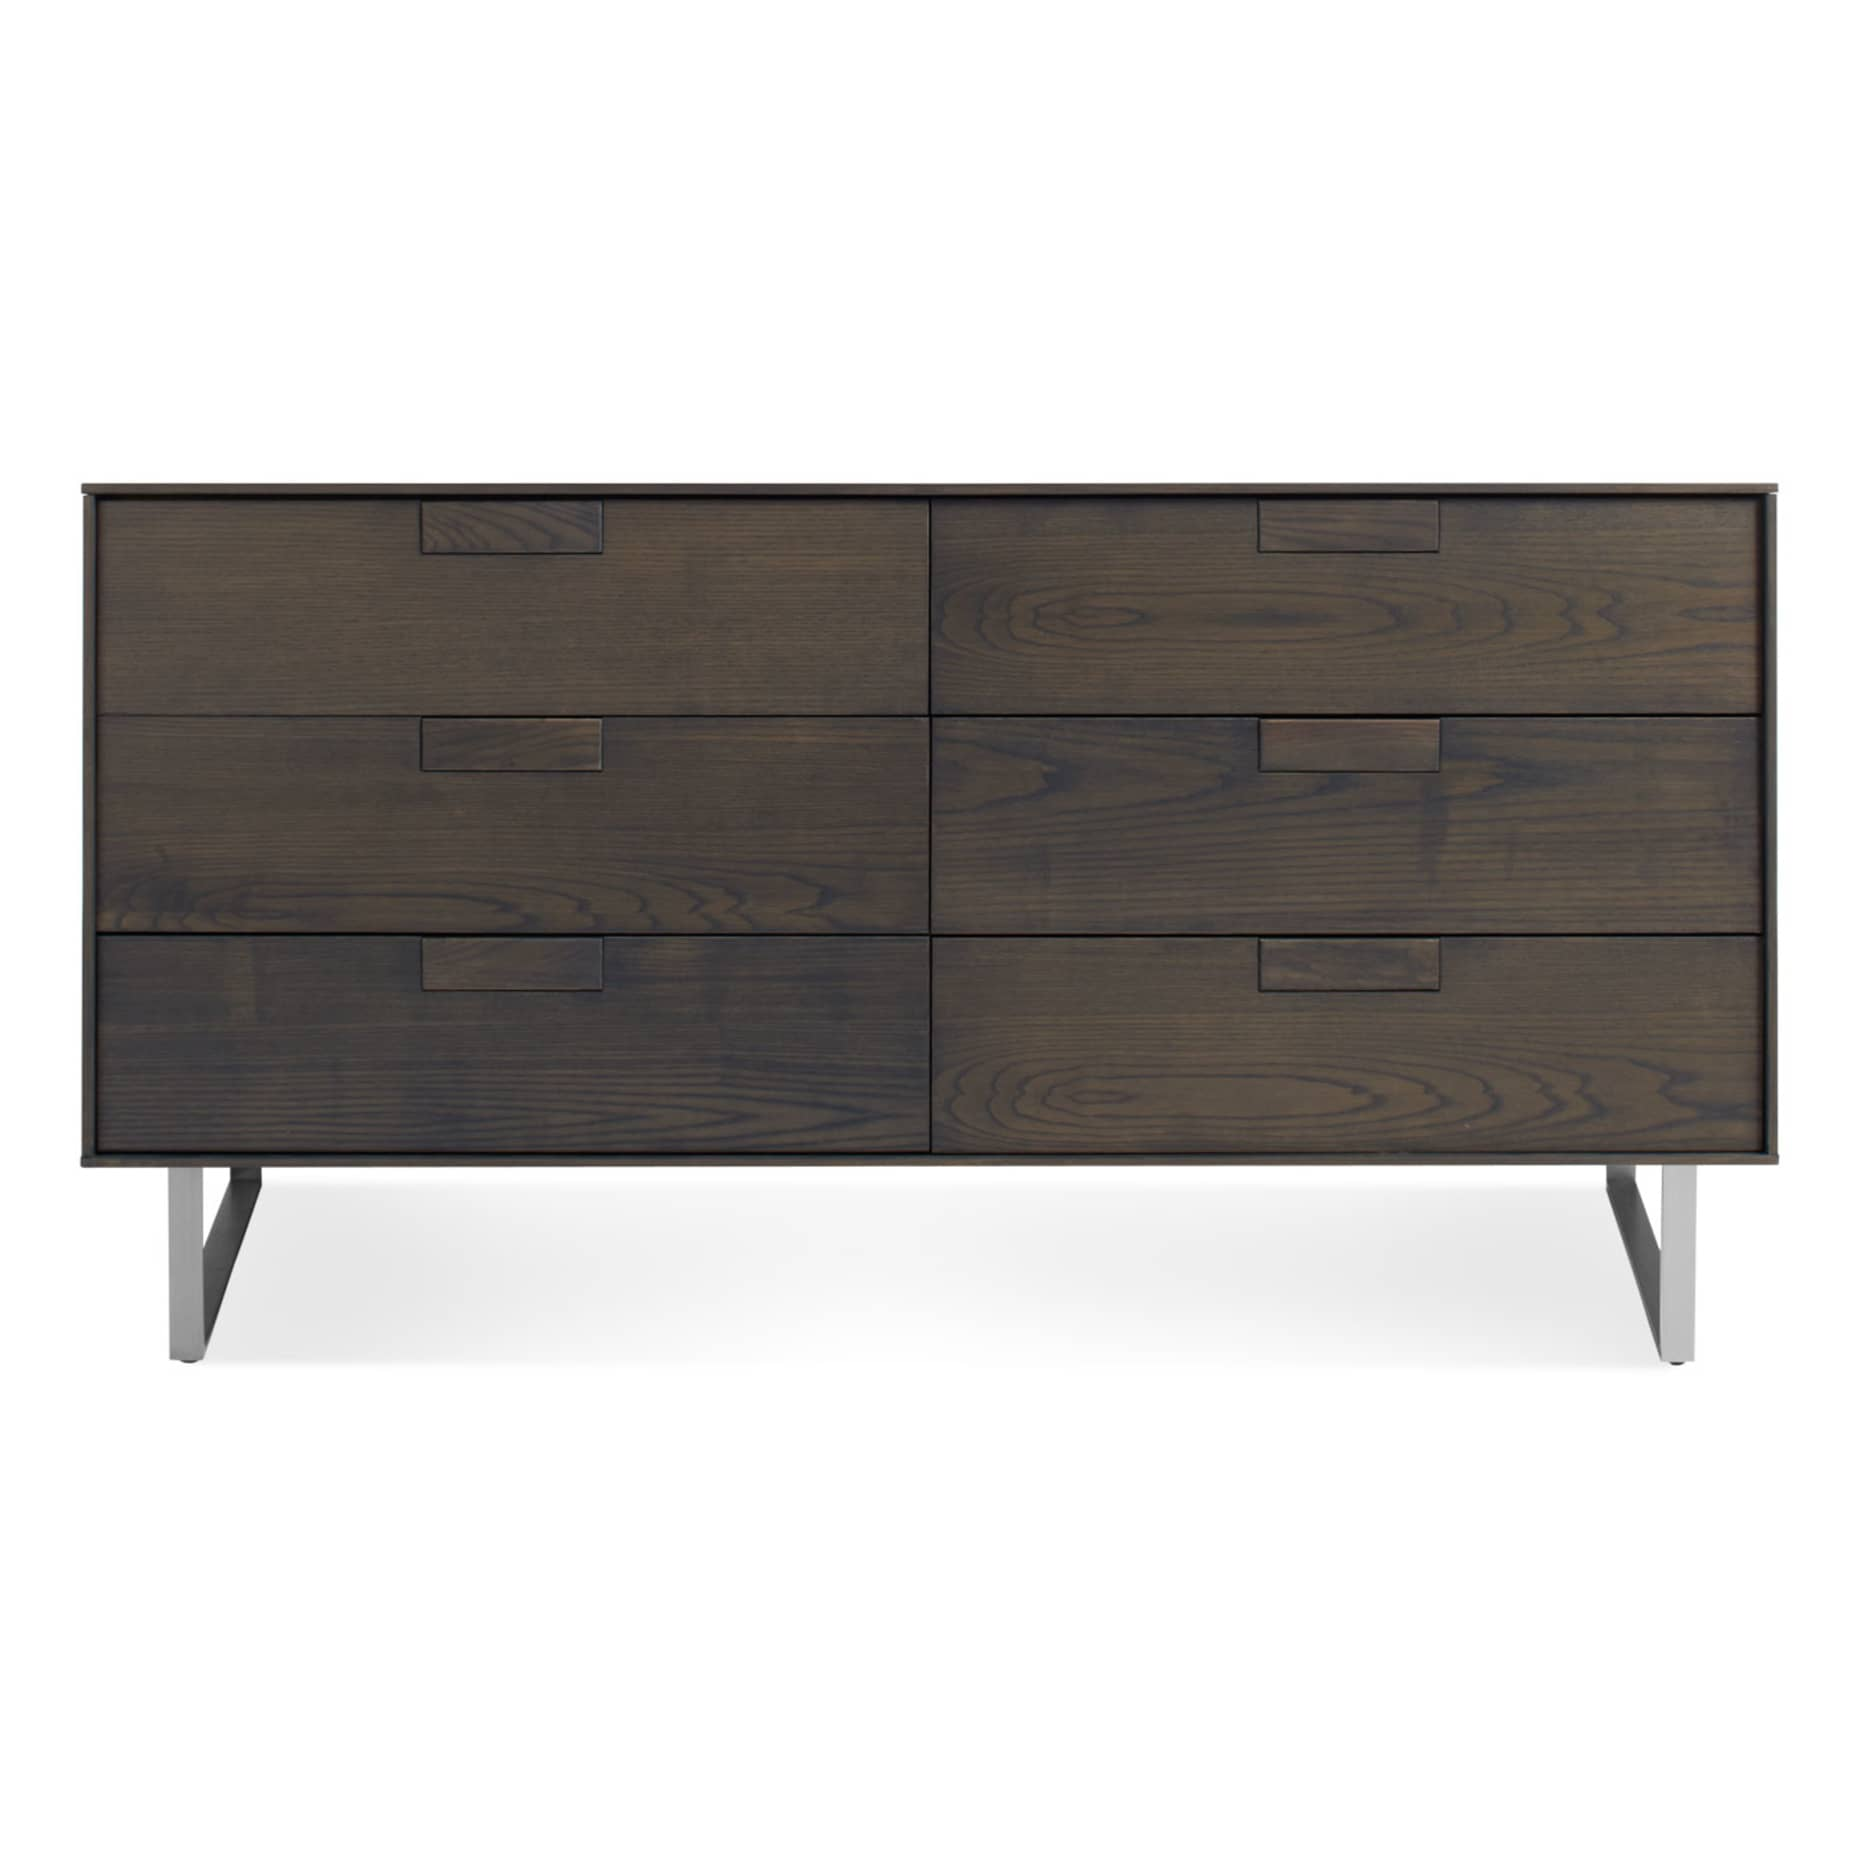 se1 6drw sk series 11 6 drawer dresser smoke on ash 2